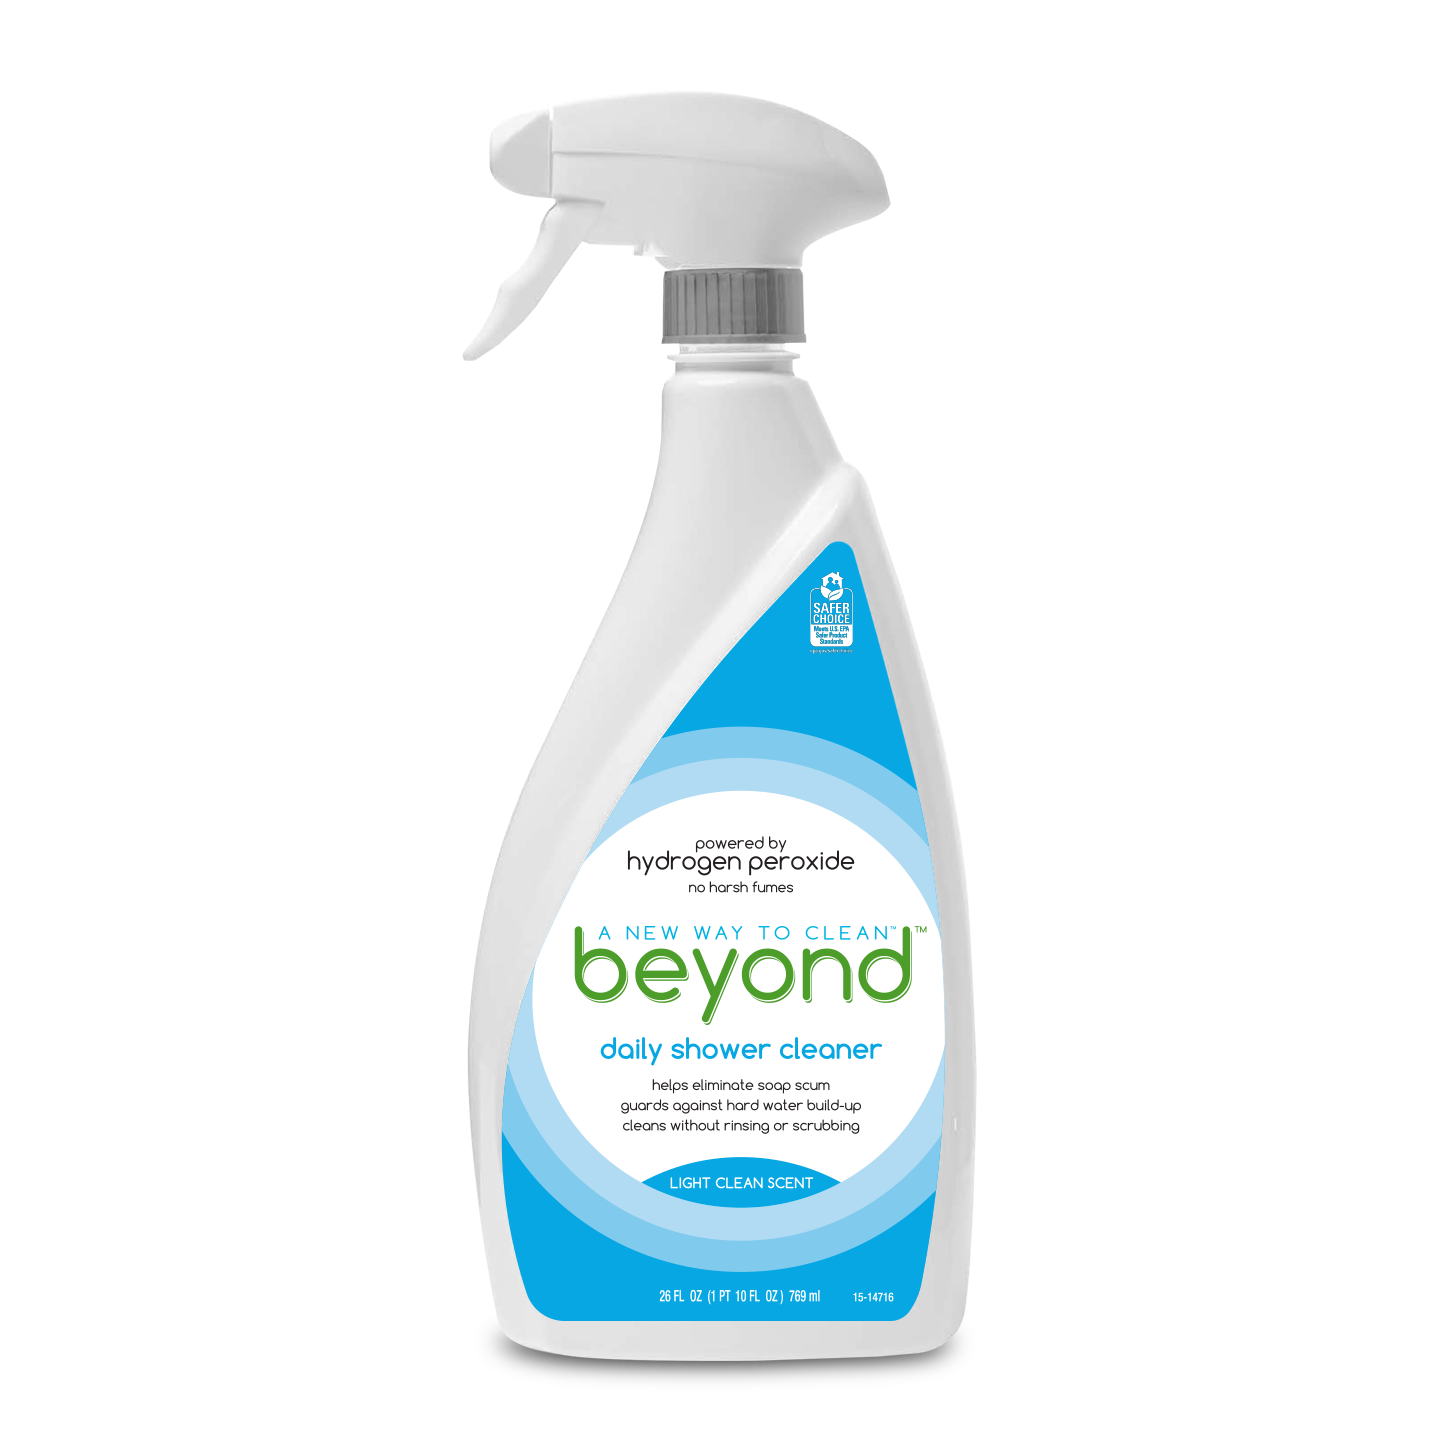 Beyond™ Daily Shower Cleaner spray bottle